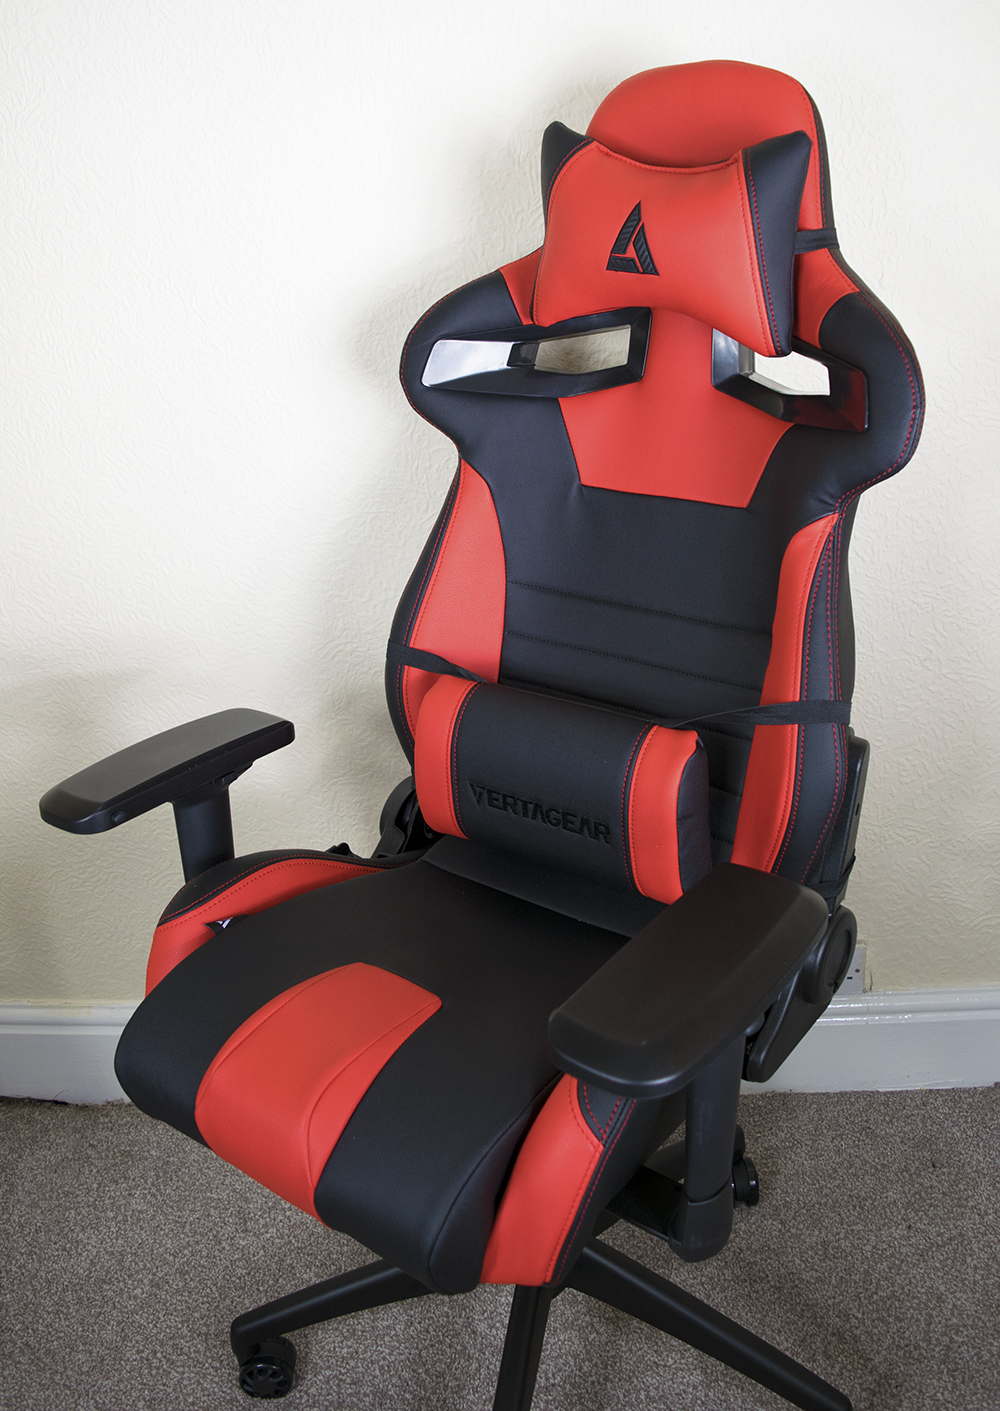 Vertagear Sl4000 Gaming Chair Review Play3r Page 3